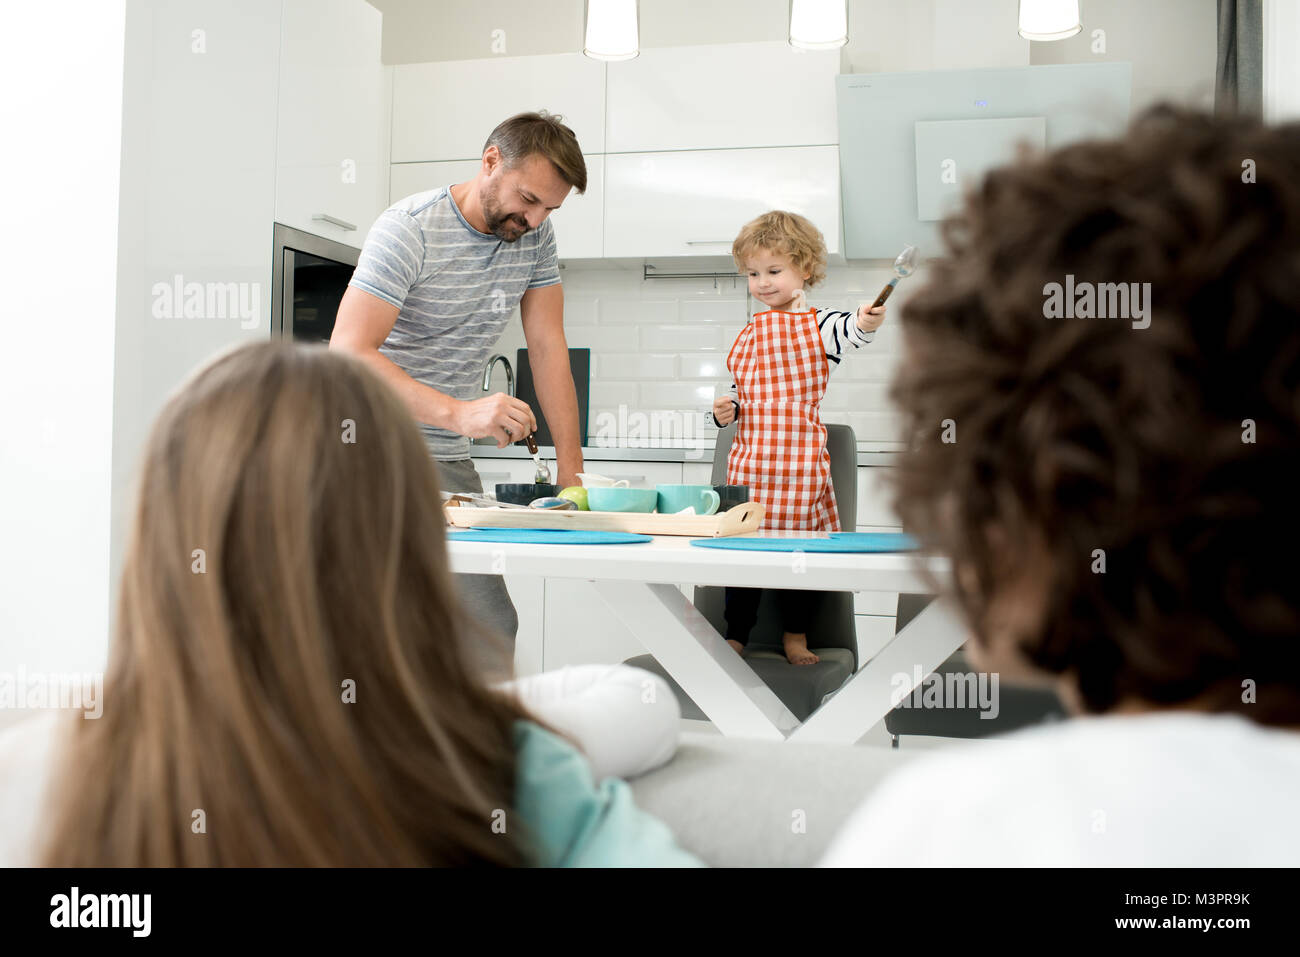 Father and Son Cooking Together - Stock Image